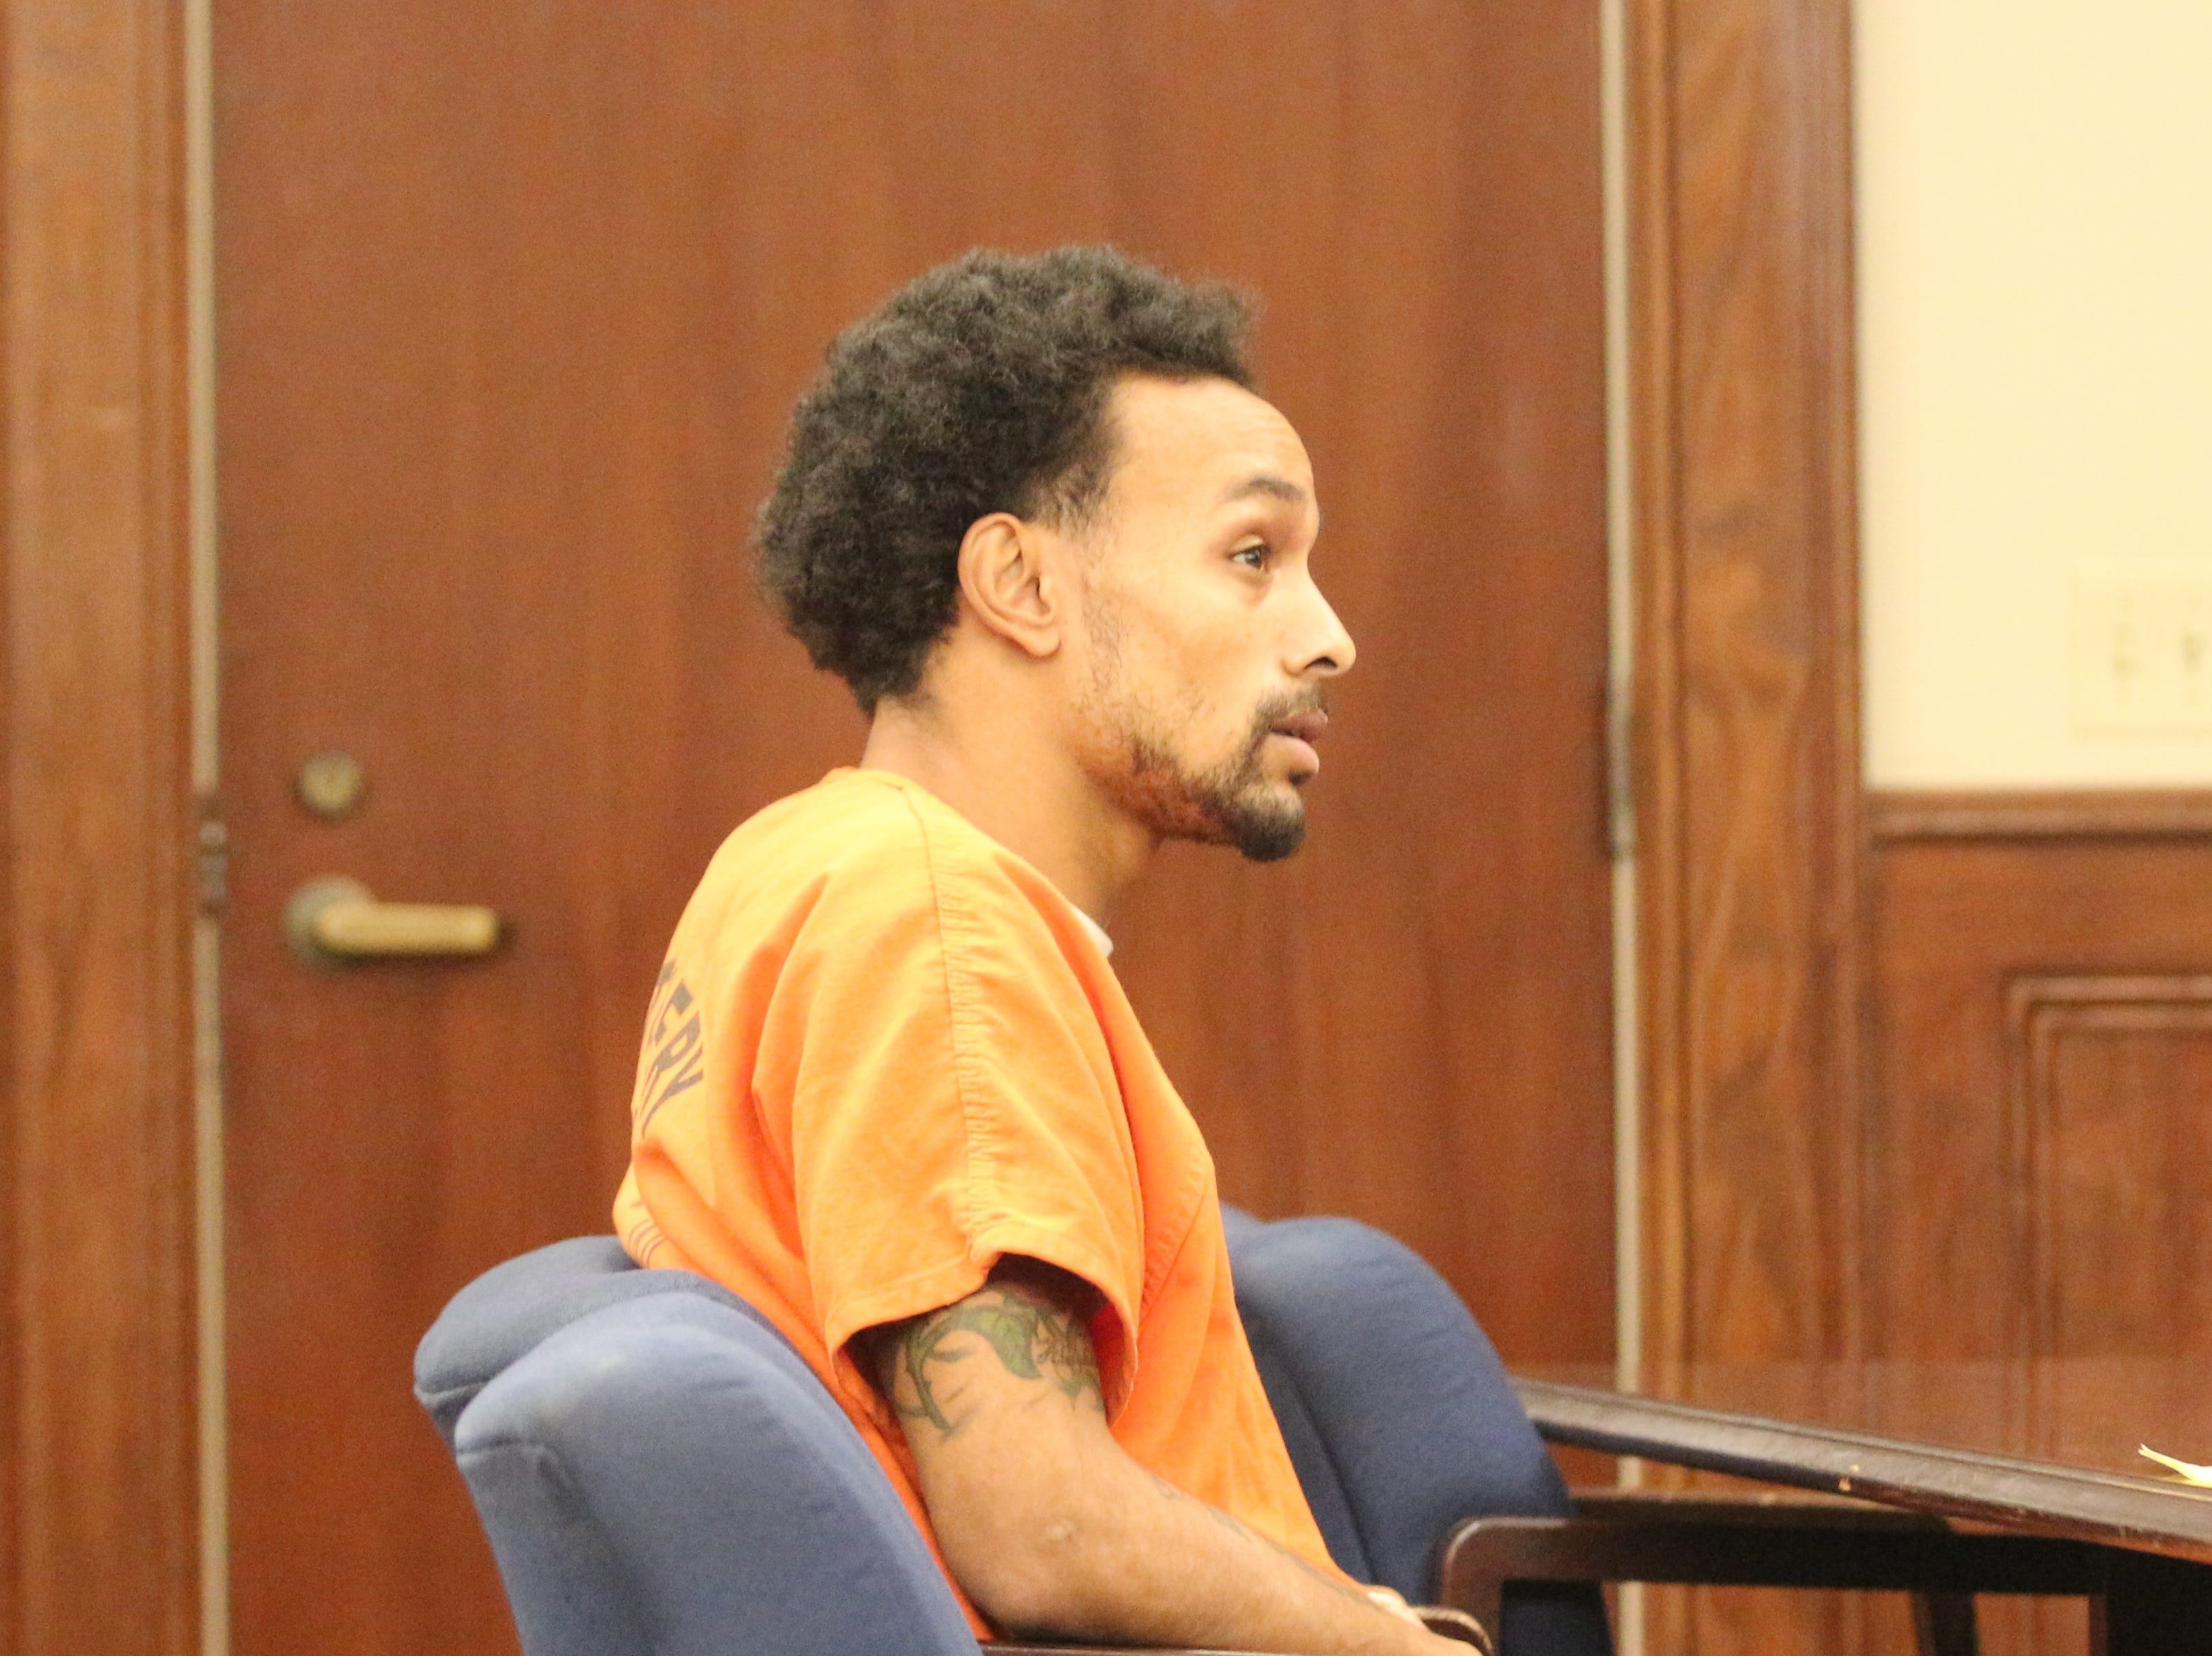 Vincent Bryan Merriweather at preliminary hearing charged with homicide in the shooting death of Antorius Gallion